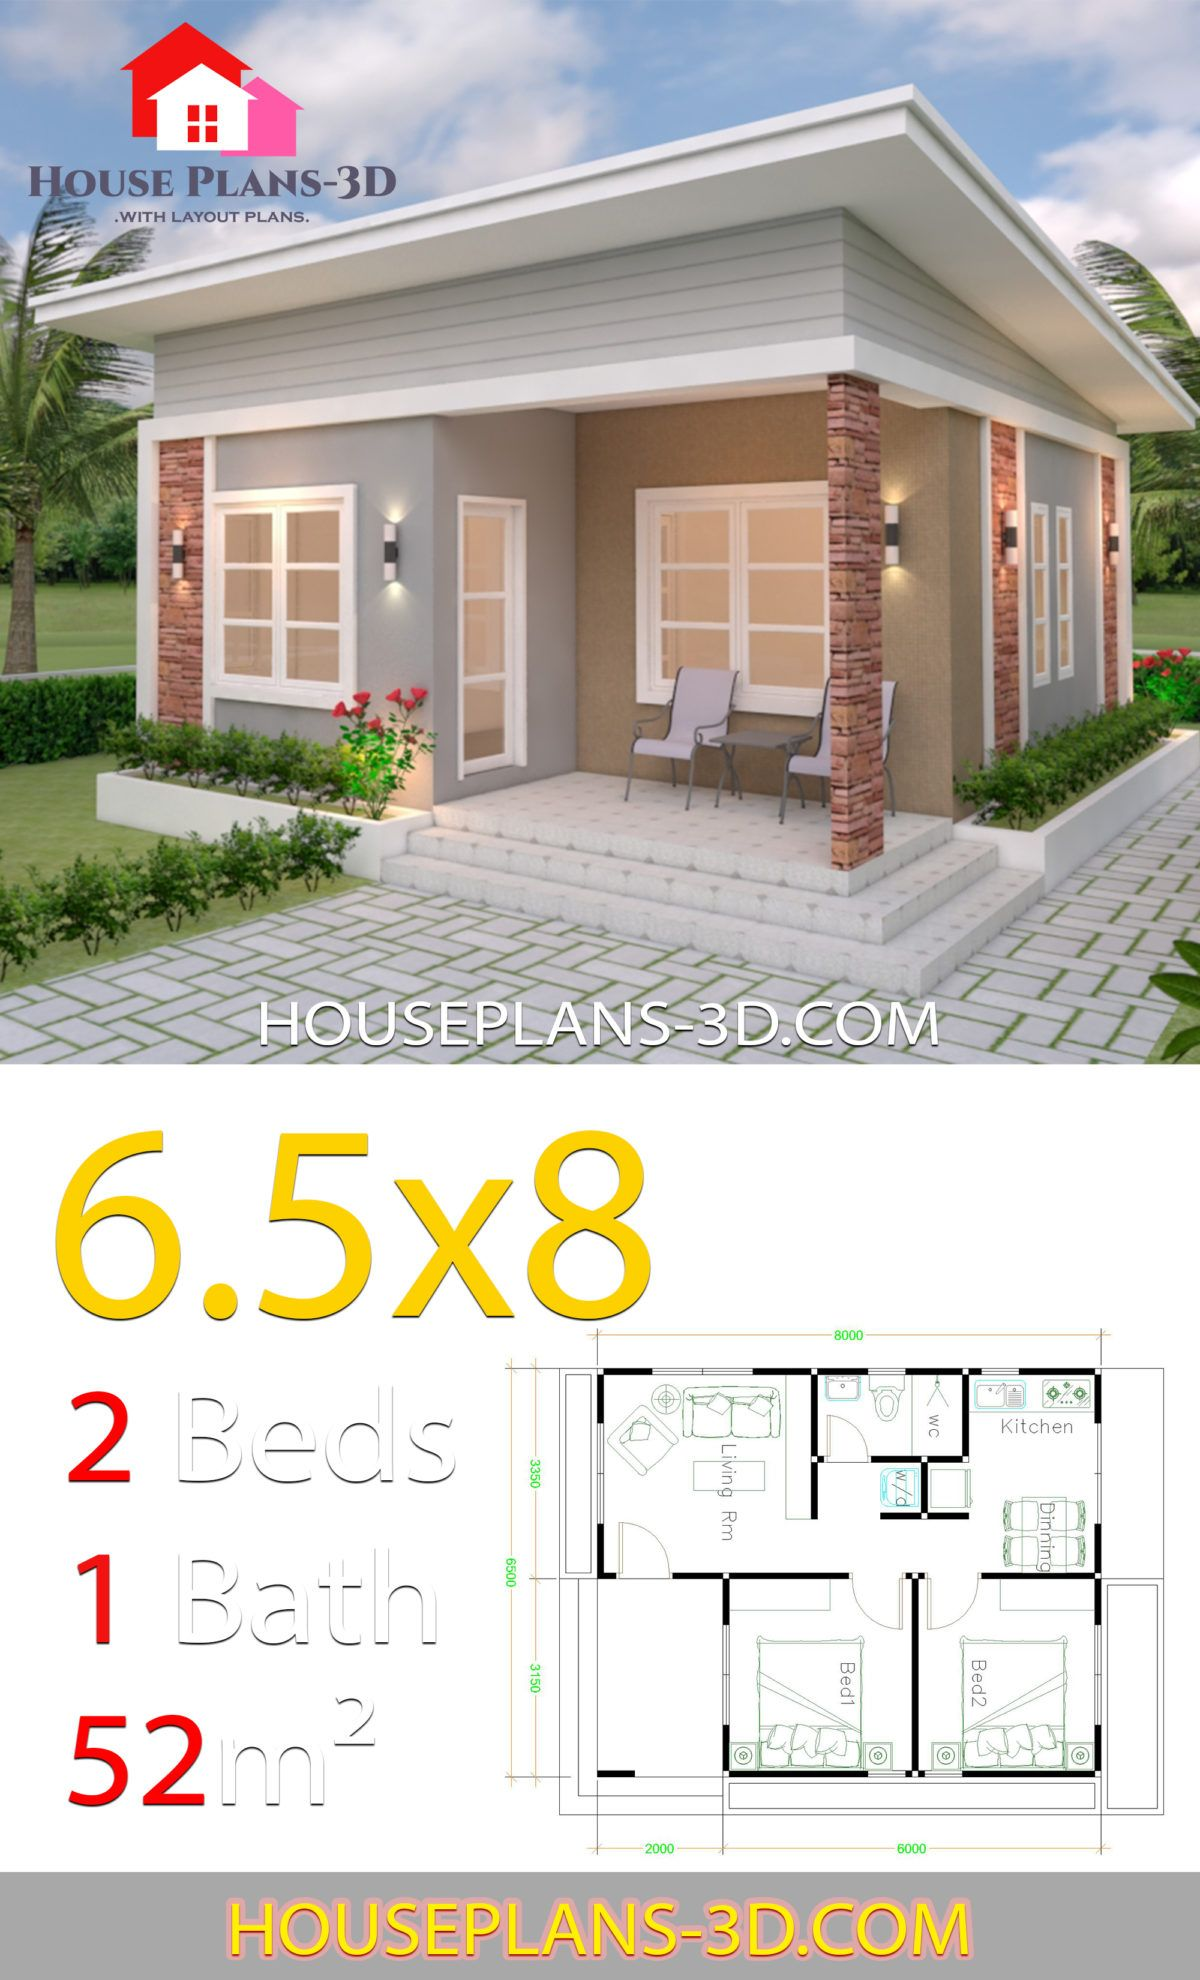 House Design Plans 6 5x8 With 2 Bedrooms Shed Roof House Plans 3d Small House Design Plans Small House Design Small House Design Exterior